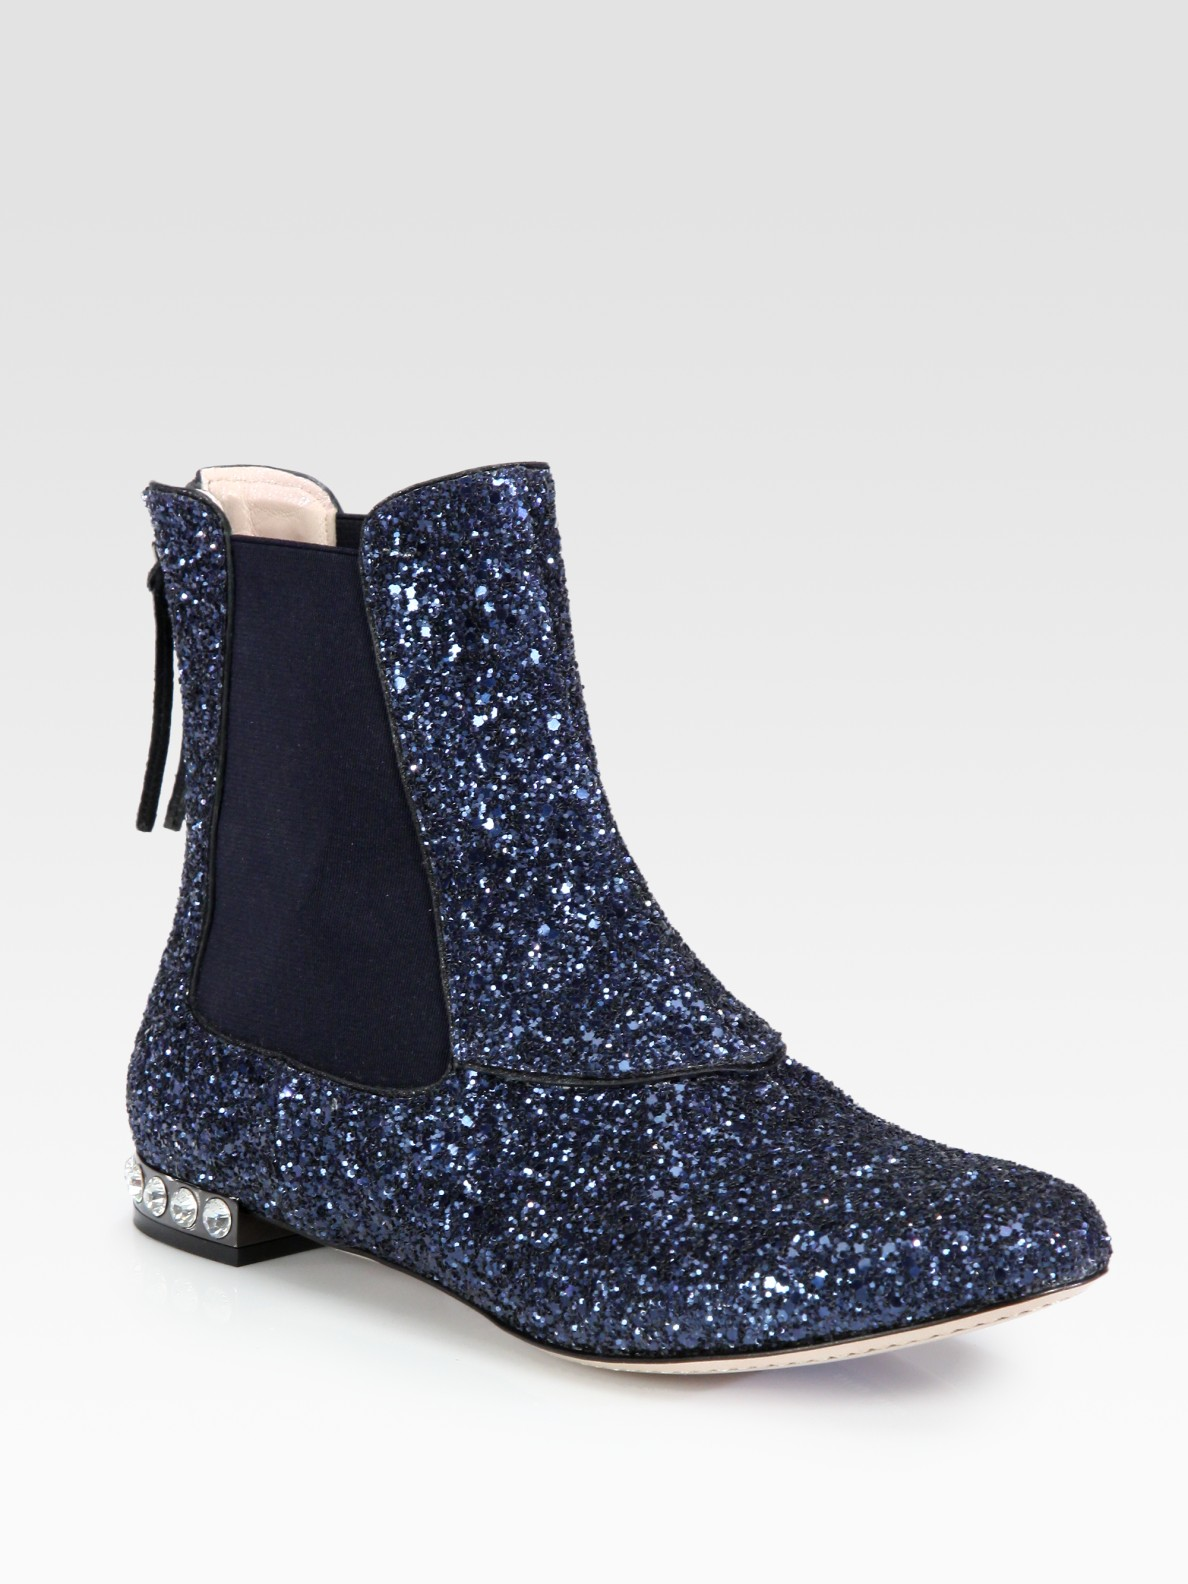 Lyst Miu Miu Glitter Leather And Jewel Ankle Boots In Blue